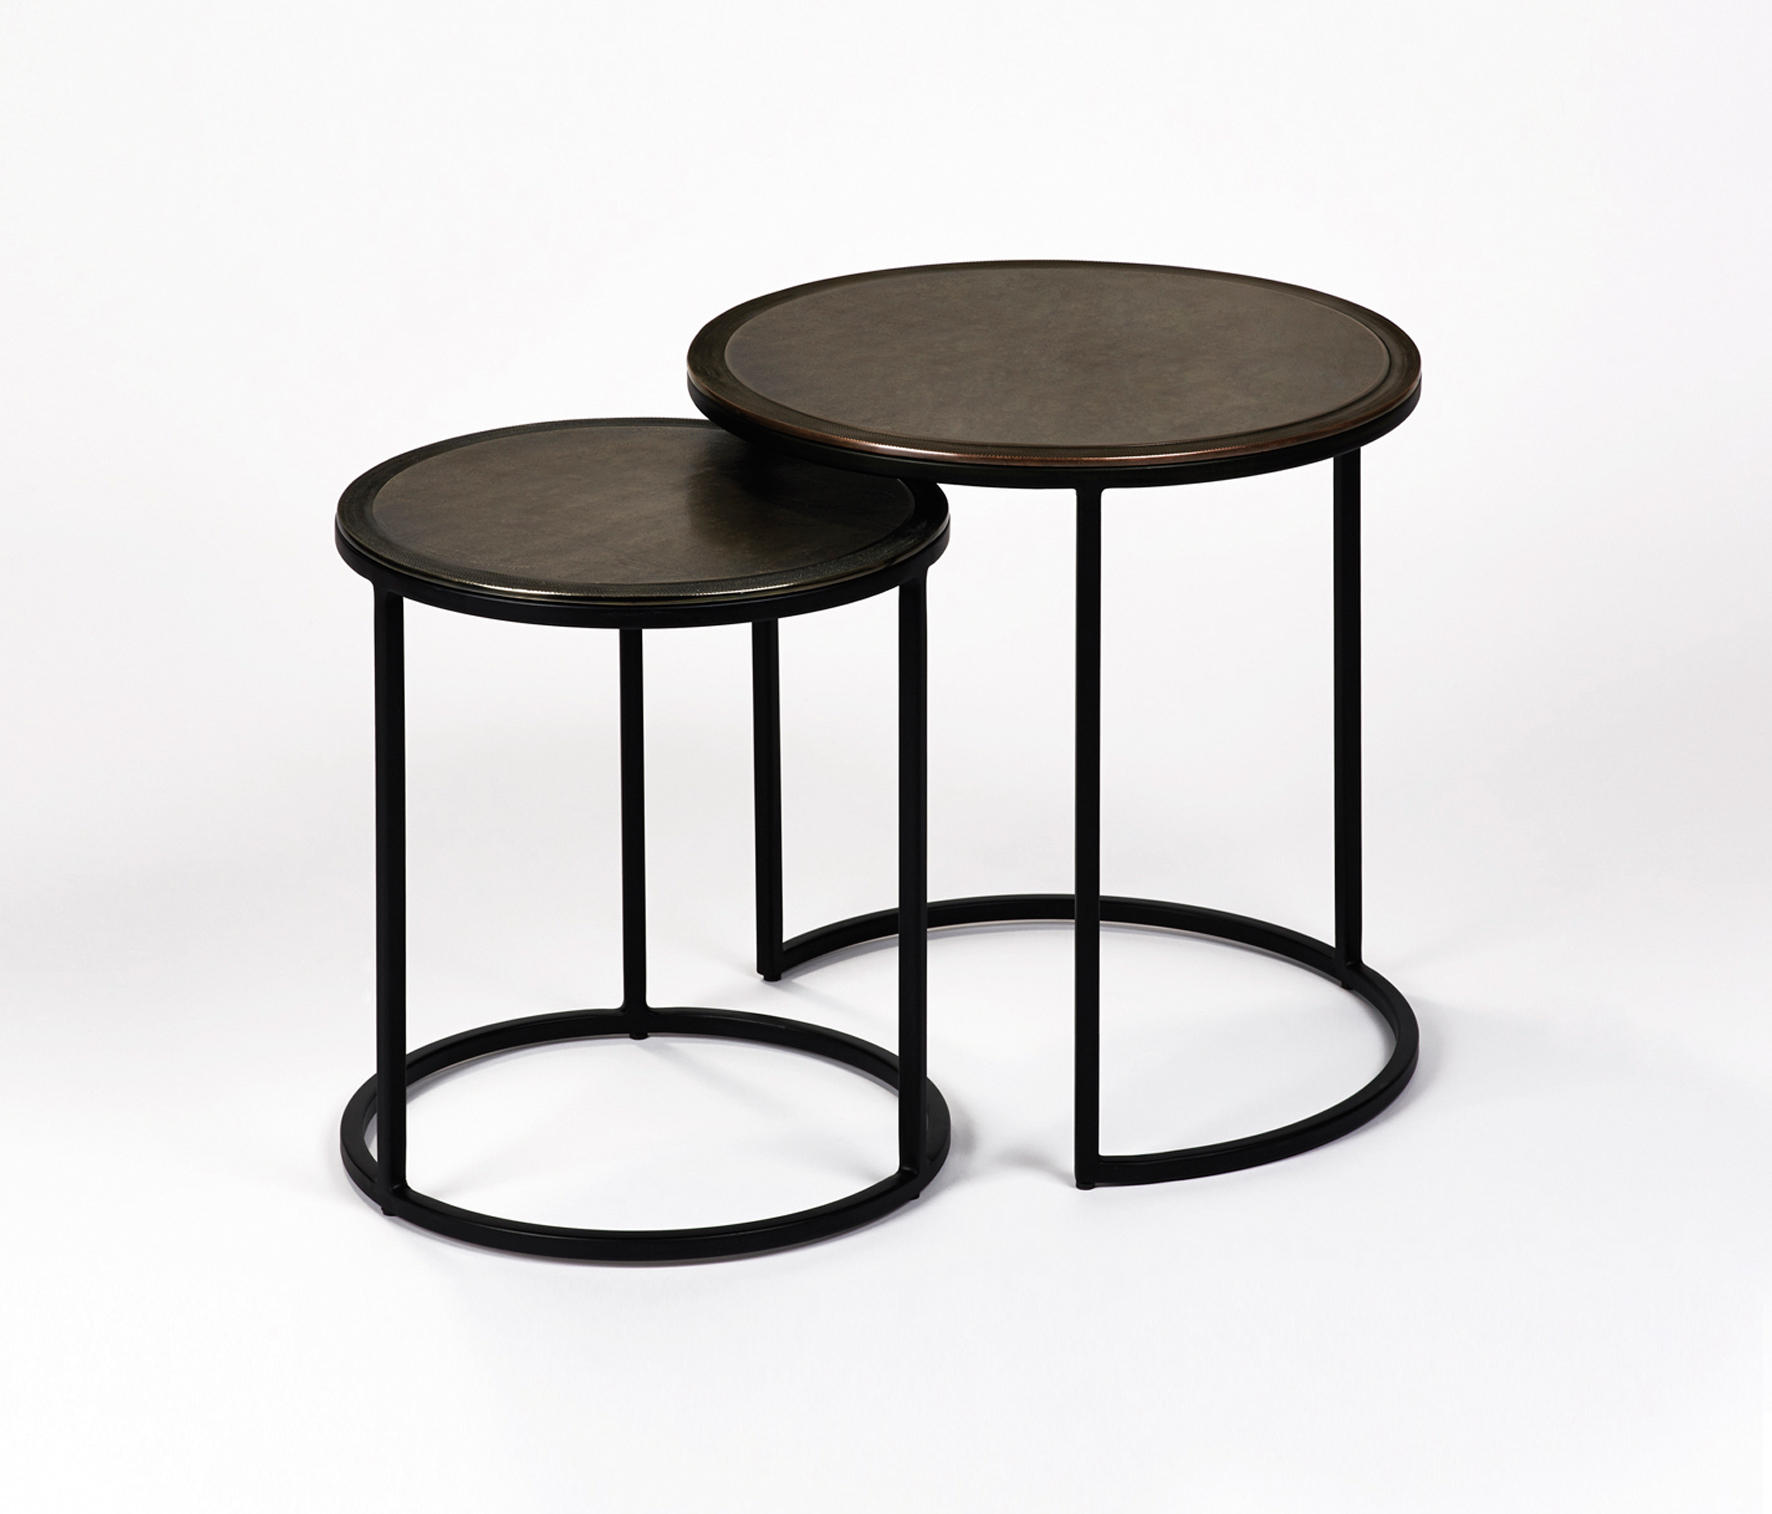 NESTING TABLES High quality designer NESTING TABLES